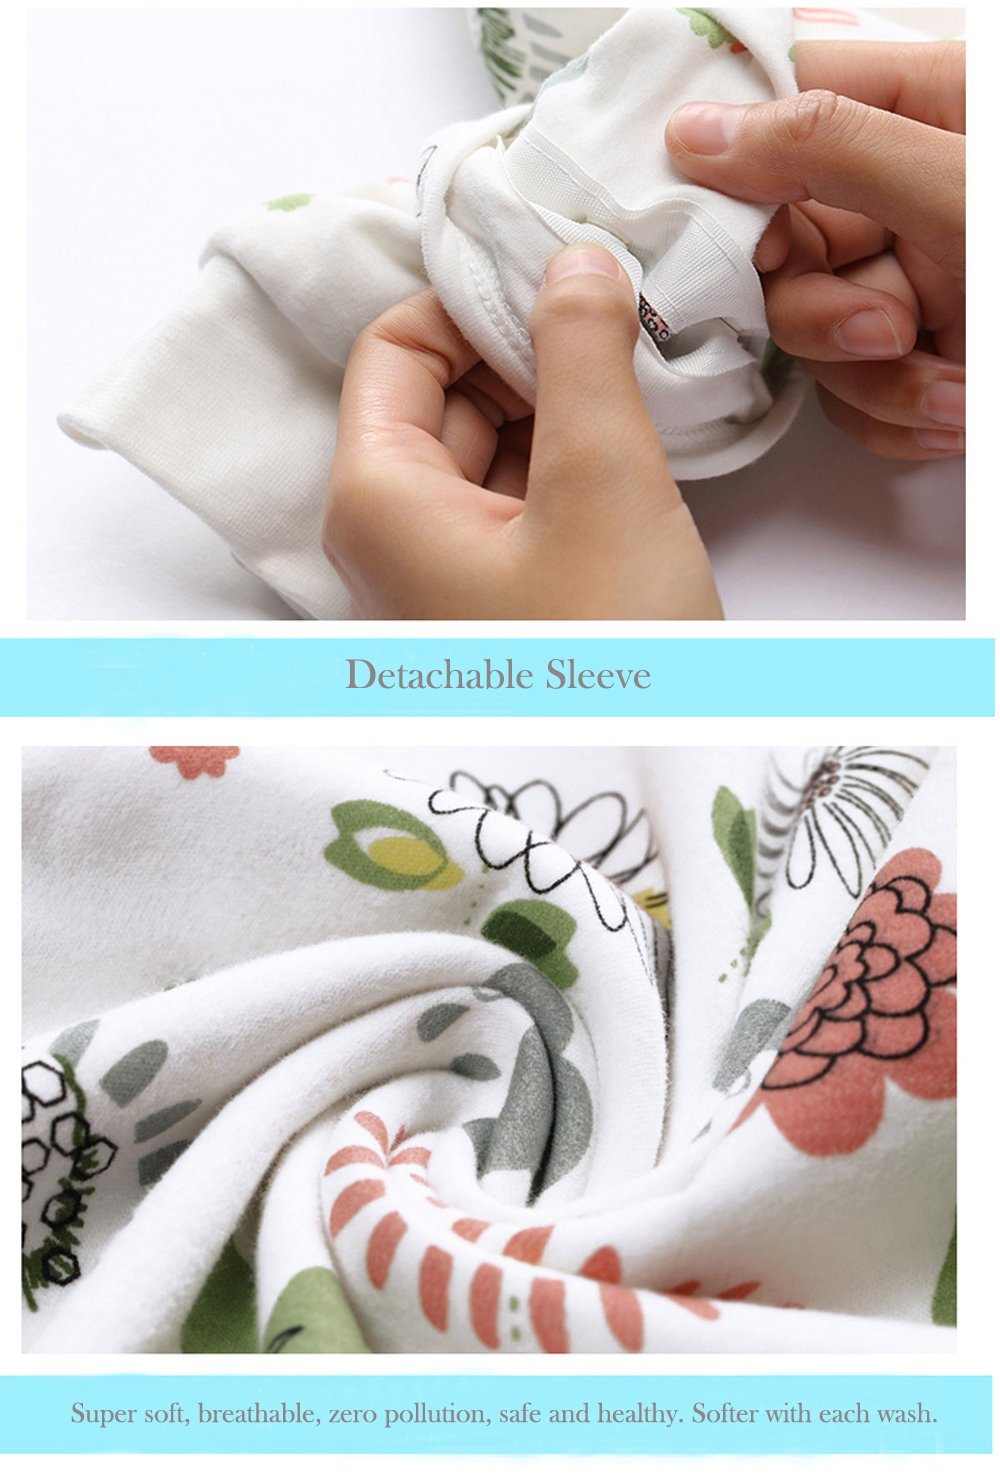 Floral Detachable Sleeve Organic Cotton Baby Sleep Bag Sack Wearable Blanket M by The morning (Image #4)